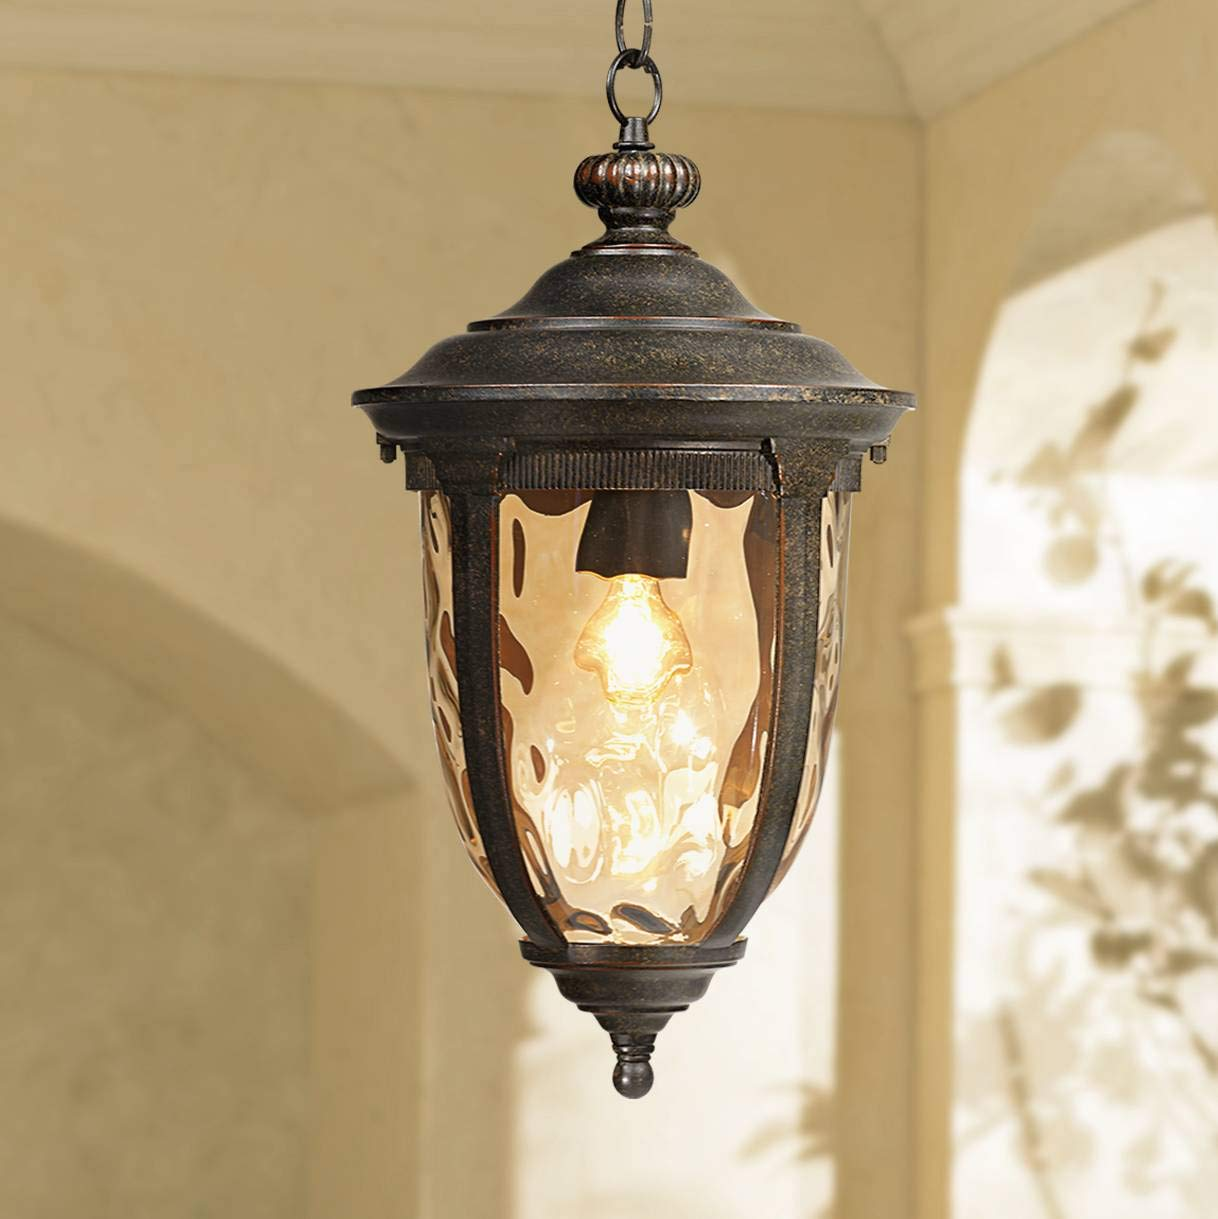 Bellagio Rustic Outdoor Ceiling Light Bronze 18'' Hammered Glass for Exterior Entryway Porch - John Timberland by John Timberland